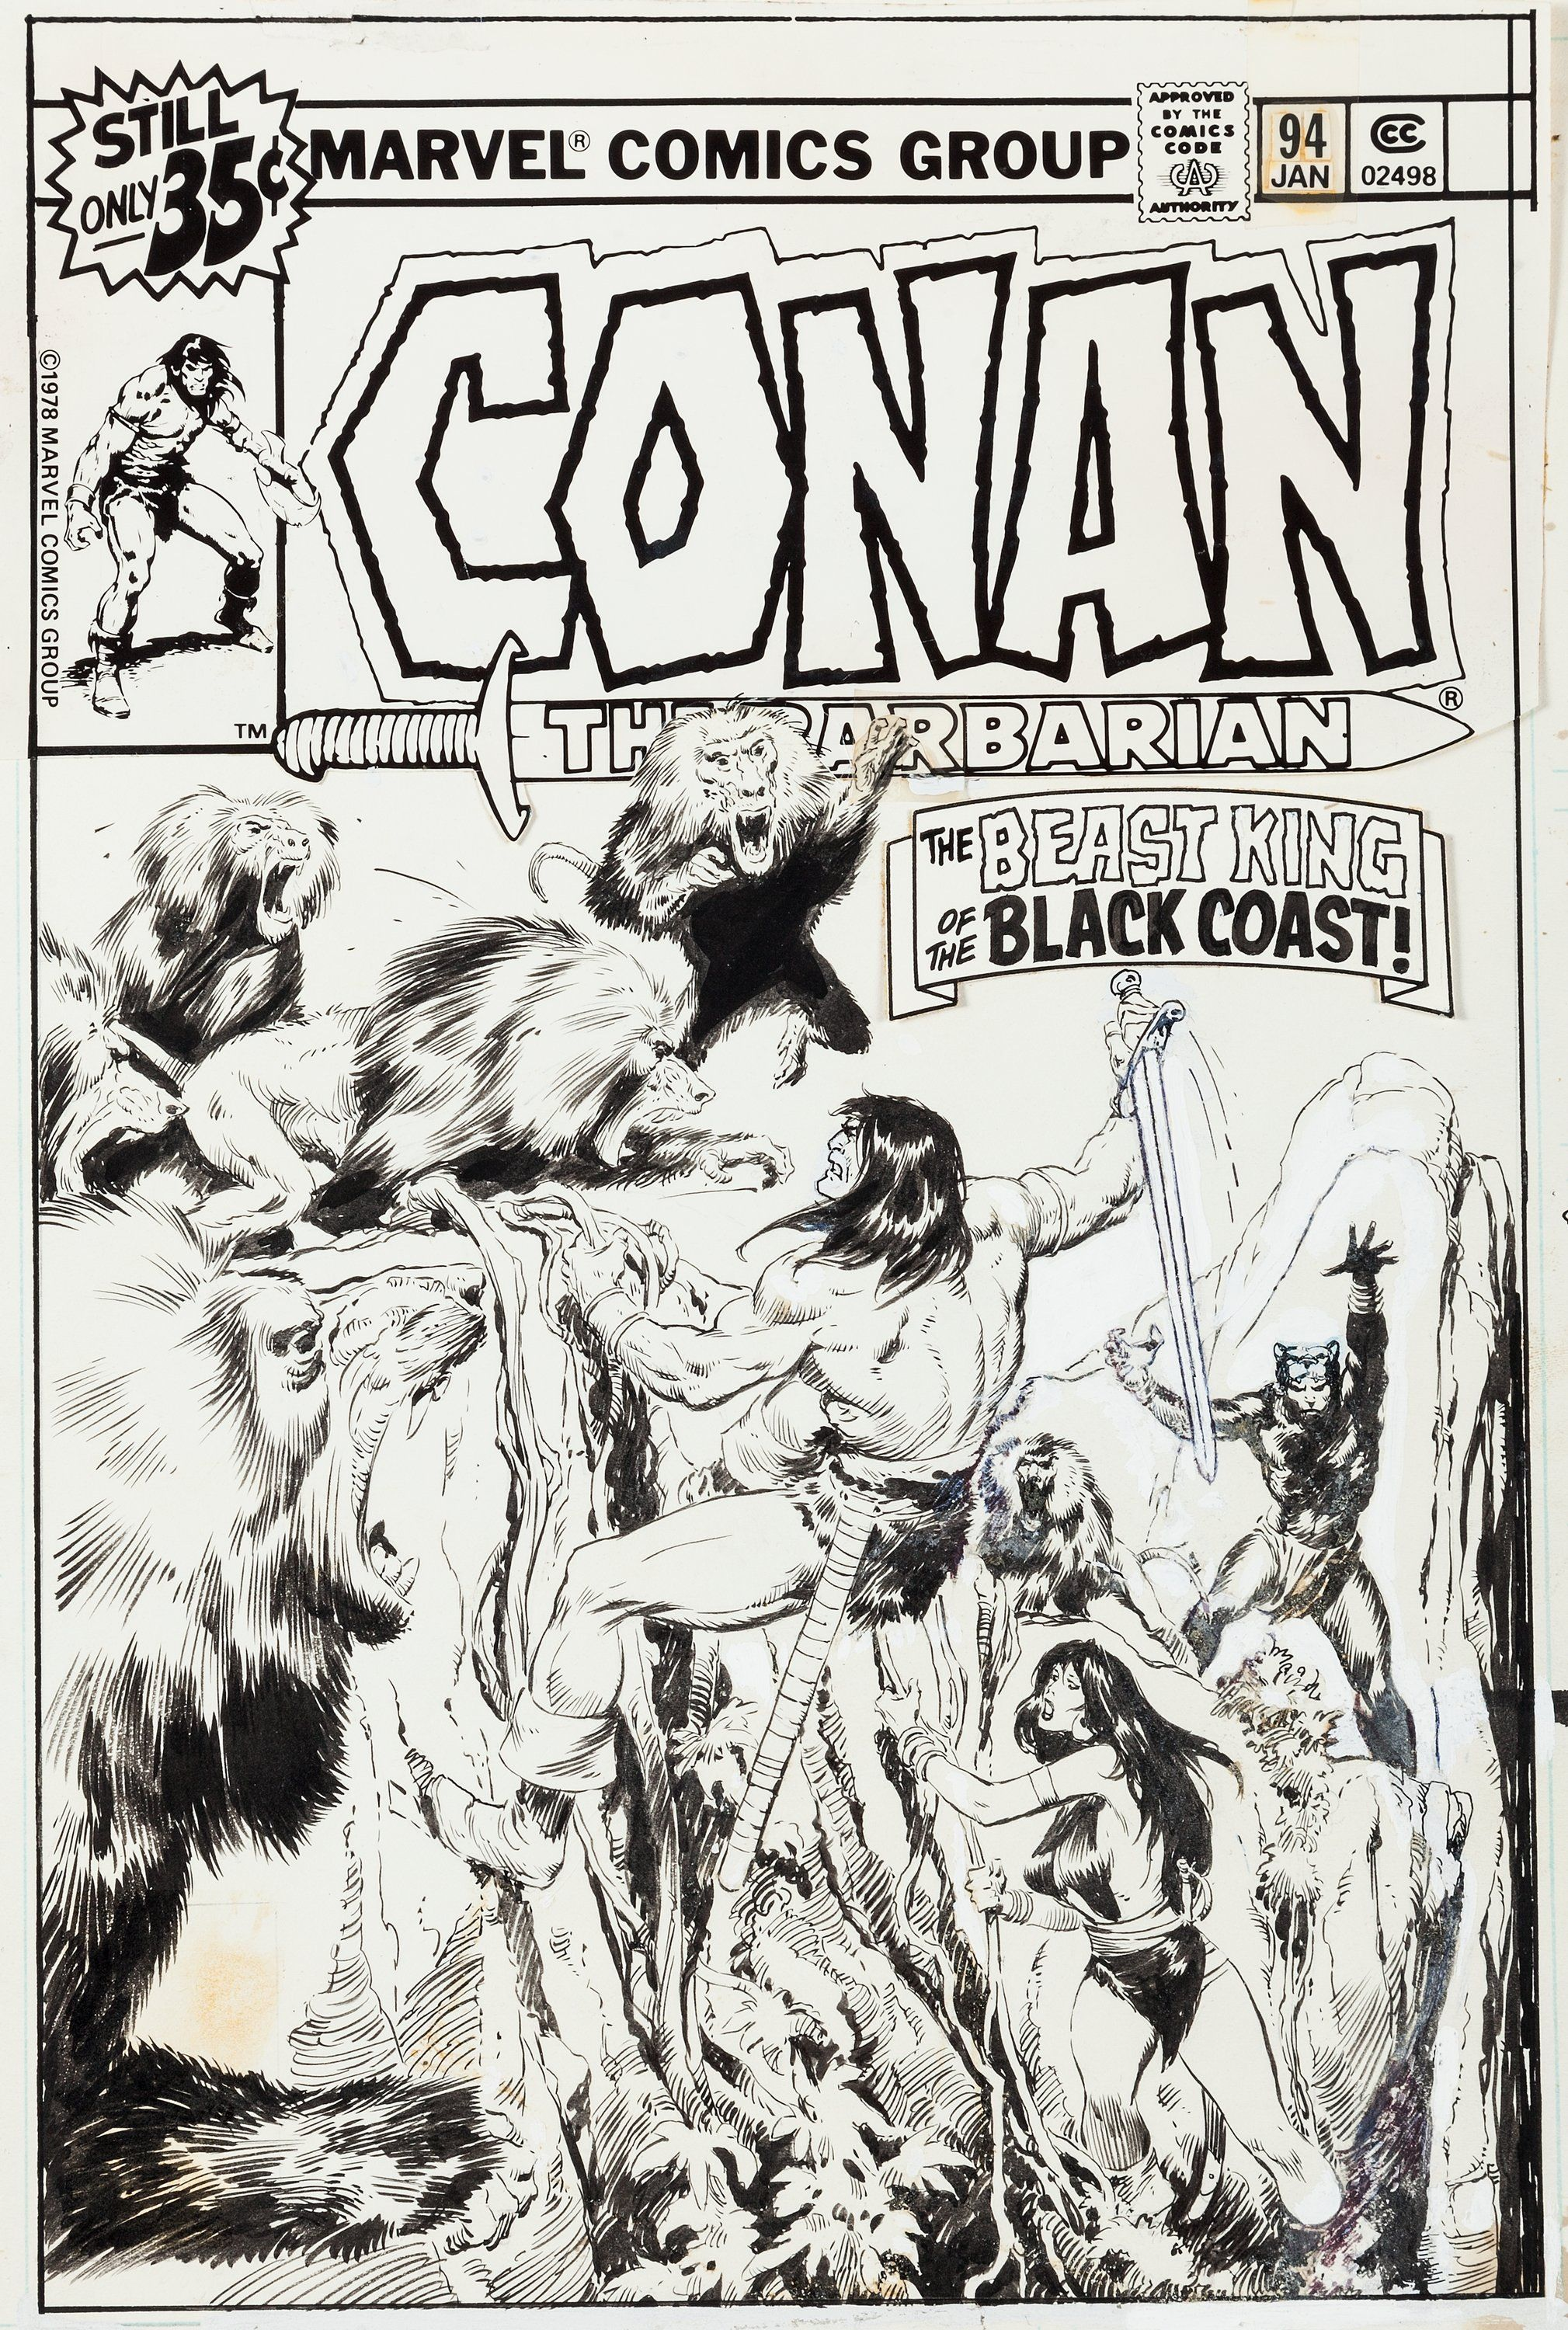 "John Buscema Conan the Barbarian #94 Cover Original Art (Marvel, 1979). ""A Conan cover with Bêlit"" is on many a want list, but Conan's paramour, the Queen of the Black Coast, appeared on less than 20 covers in the series, so there aren't many to go around. Both penciled and inked by Buscema."